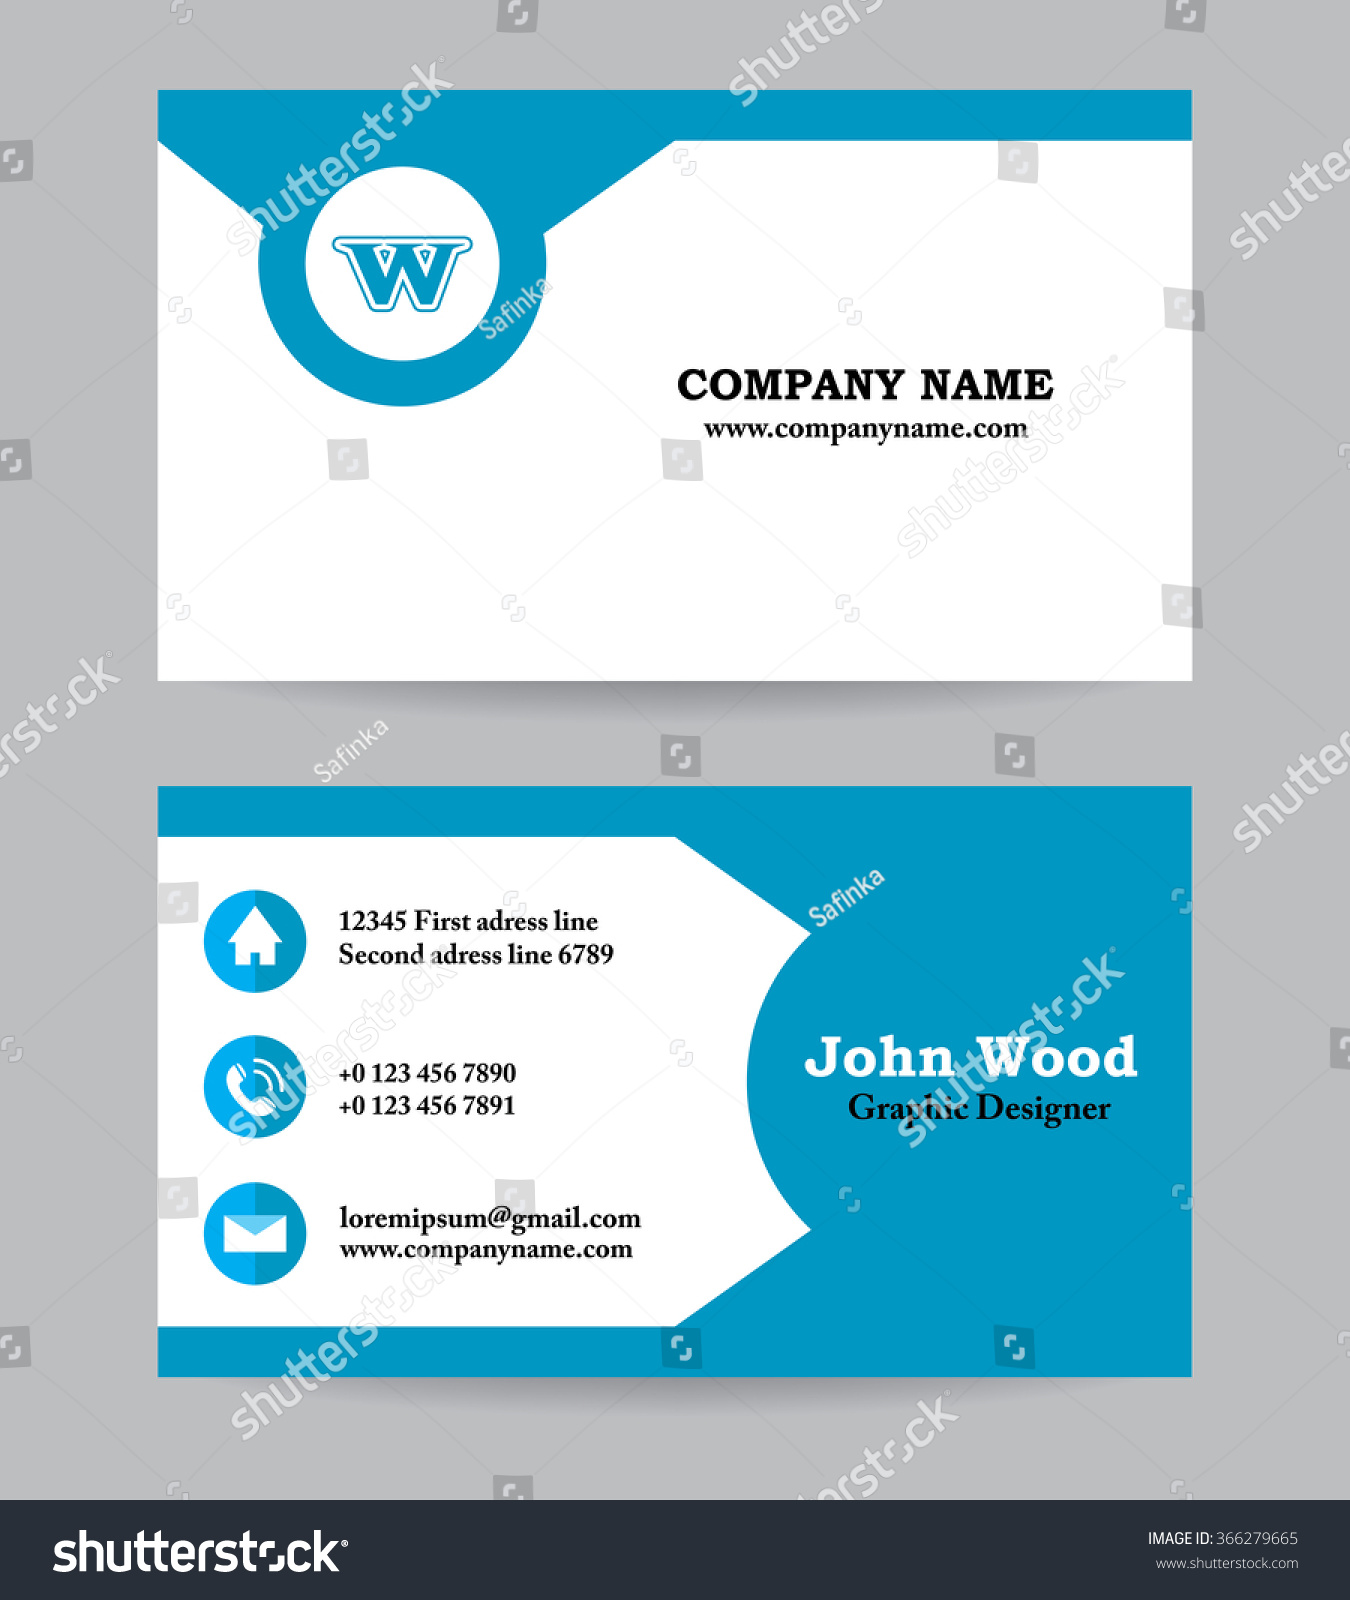 business card business card template business stock vector